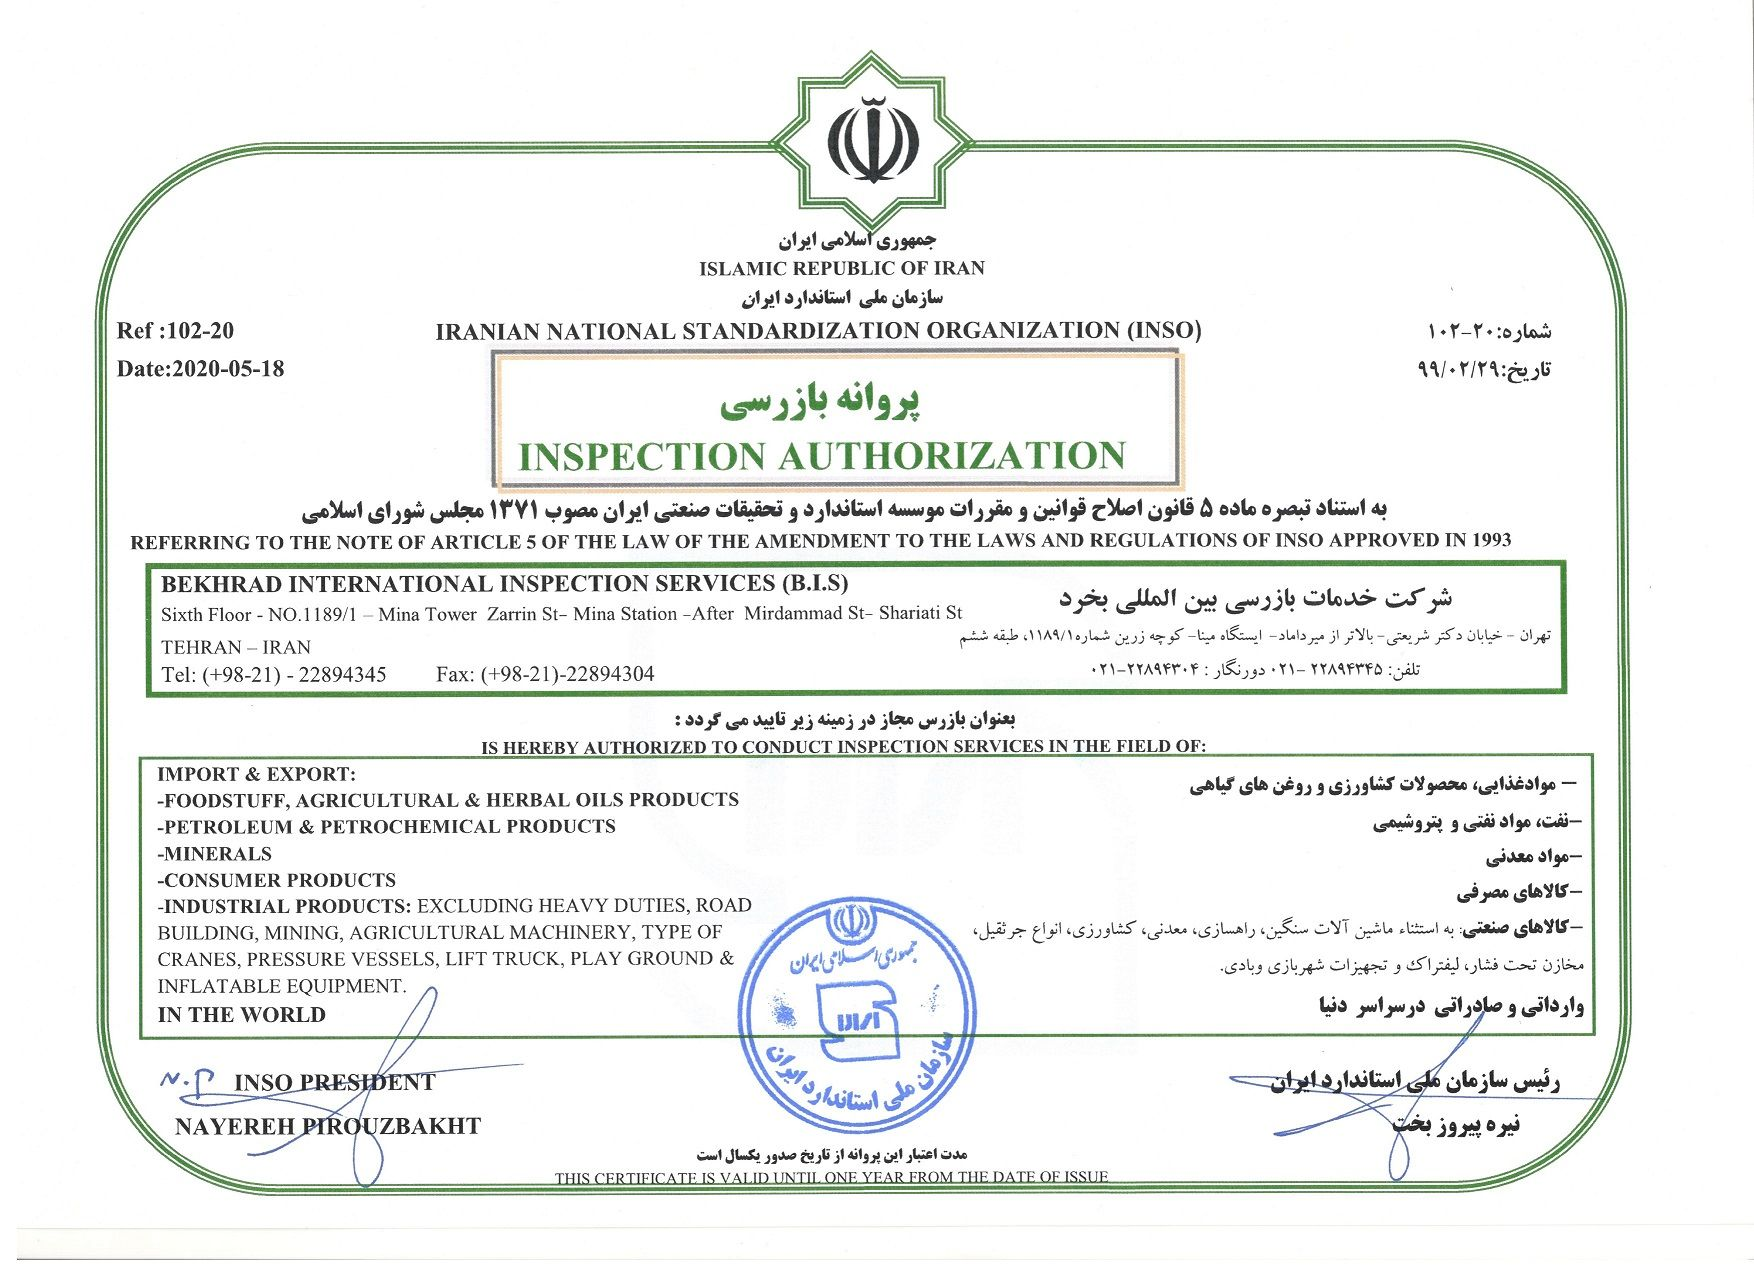 Inspection Authorization (Import & Export in the World)